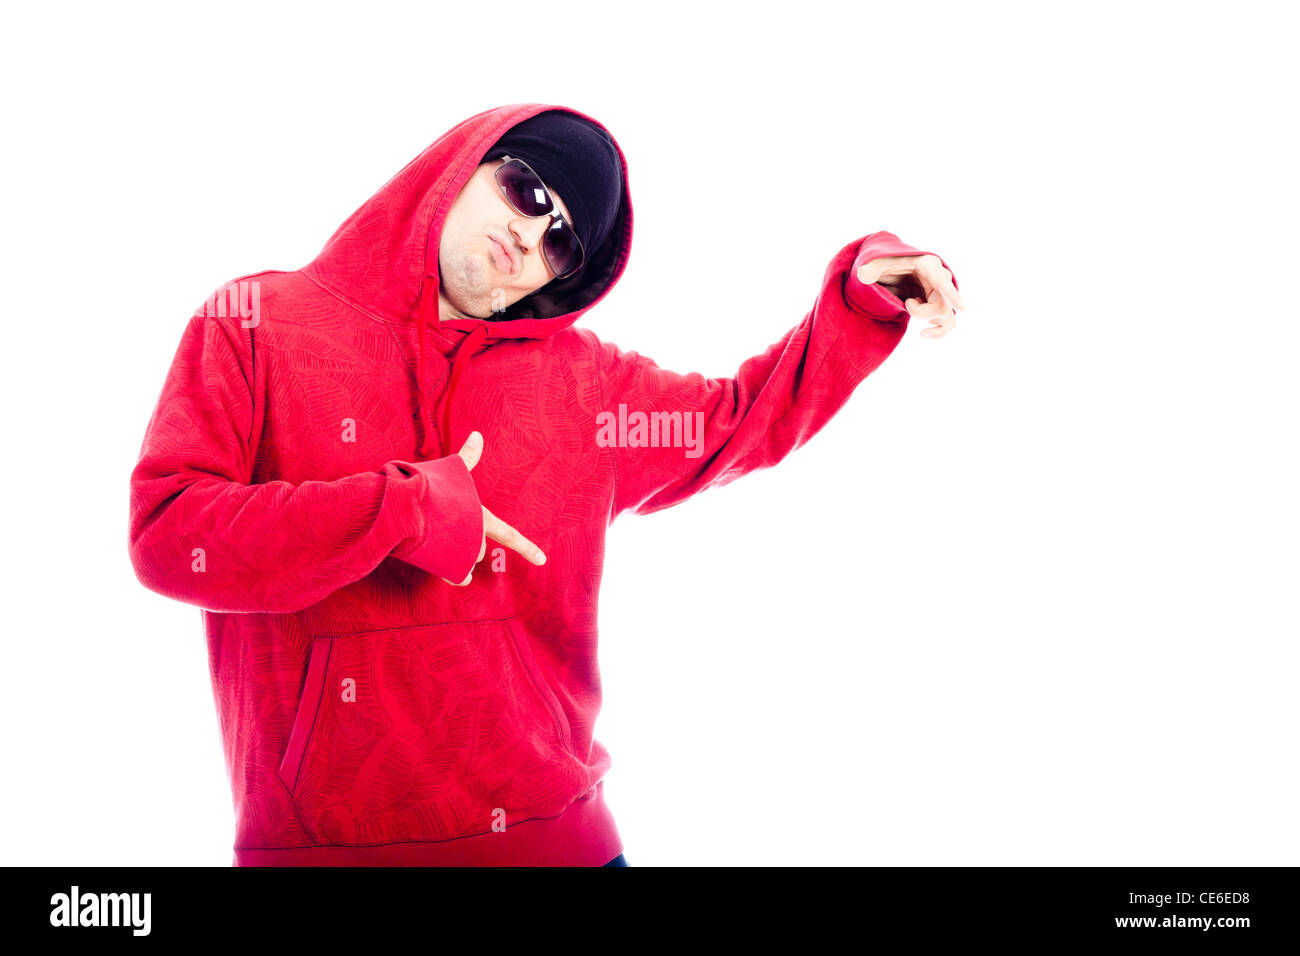 Hip Hop dancer in red hoodie pointing, isolated on white background. - Stock Image